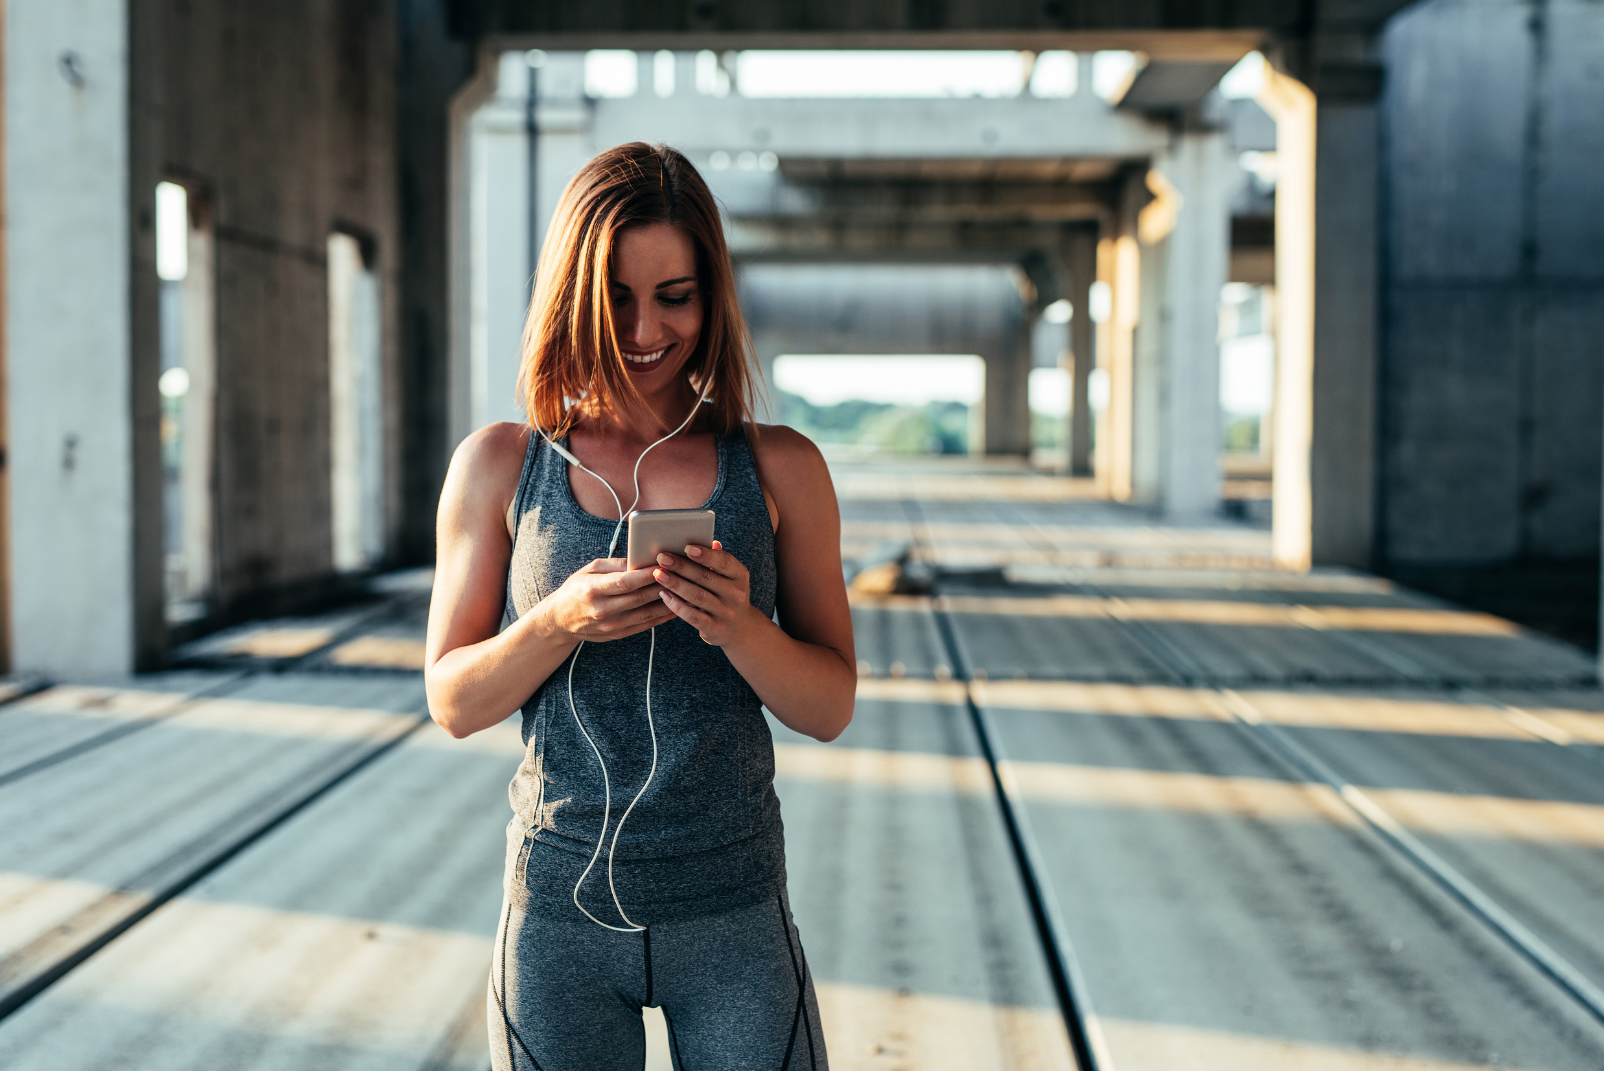 A happy woman in gym clothing, smiling and looking at her phone while standing on a wide bridge